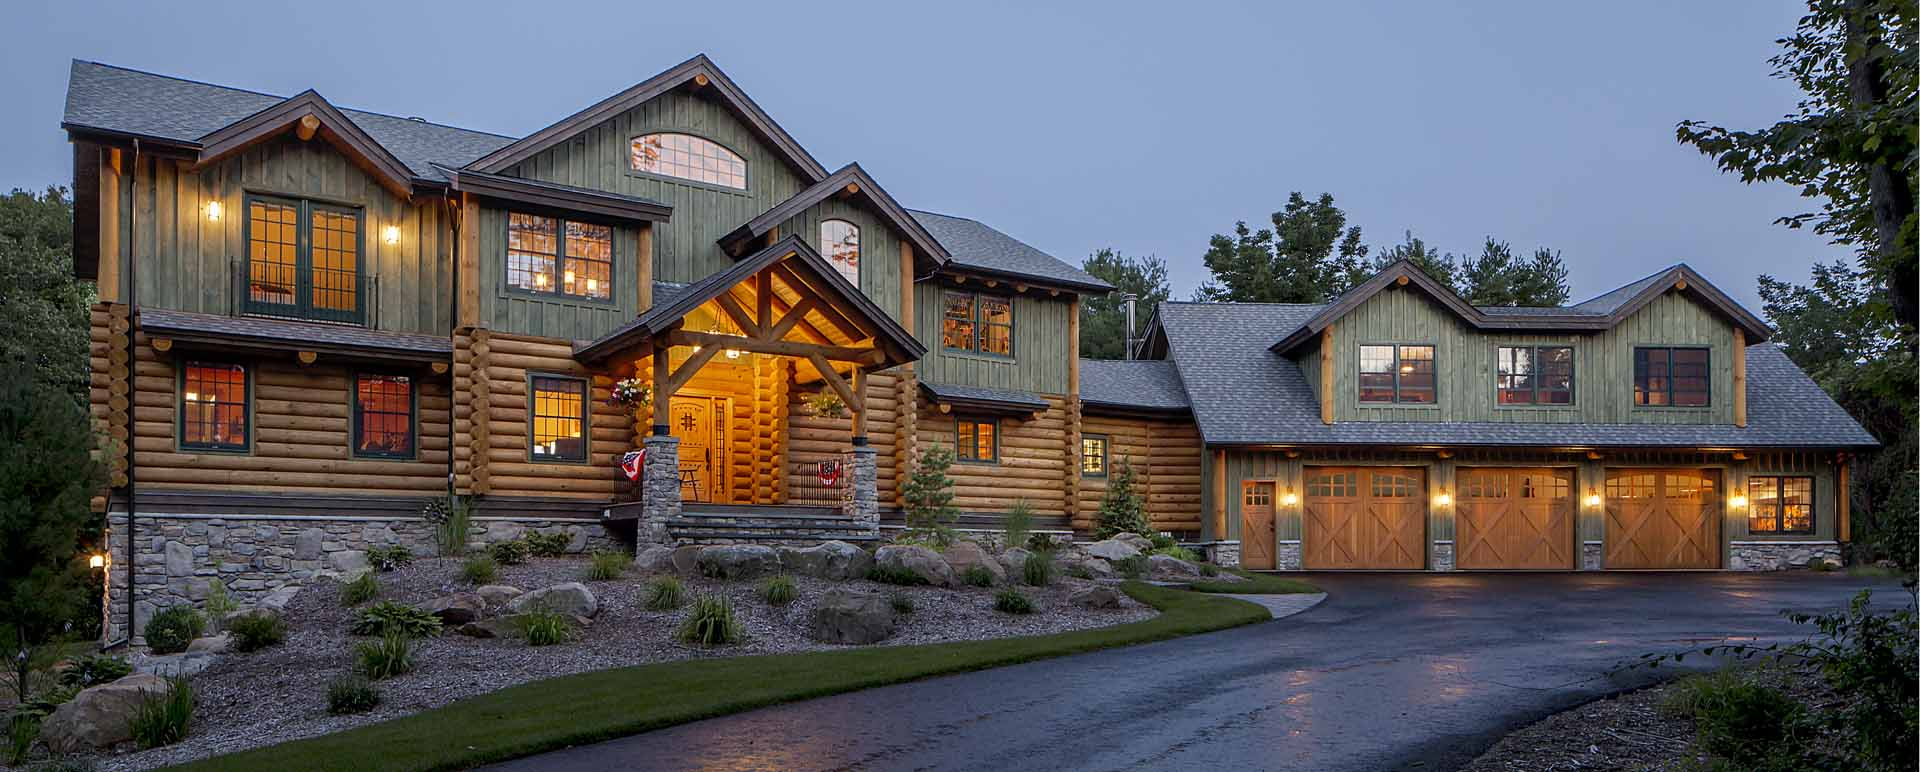 real log homes | log home plans, log cabin kits